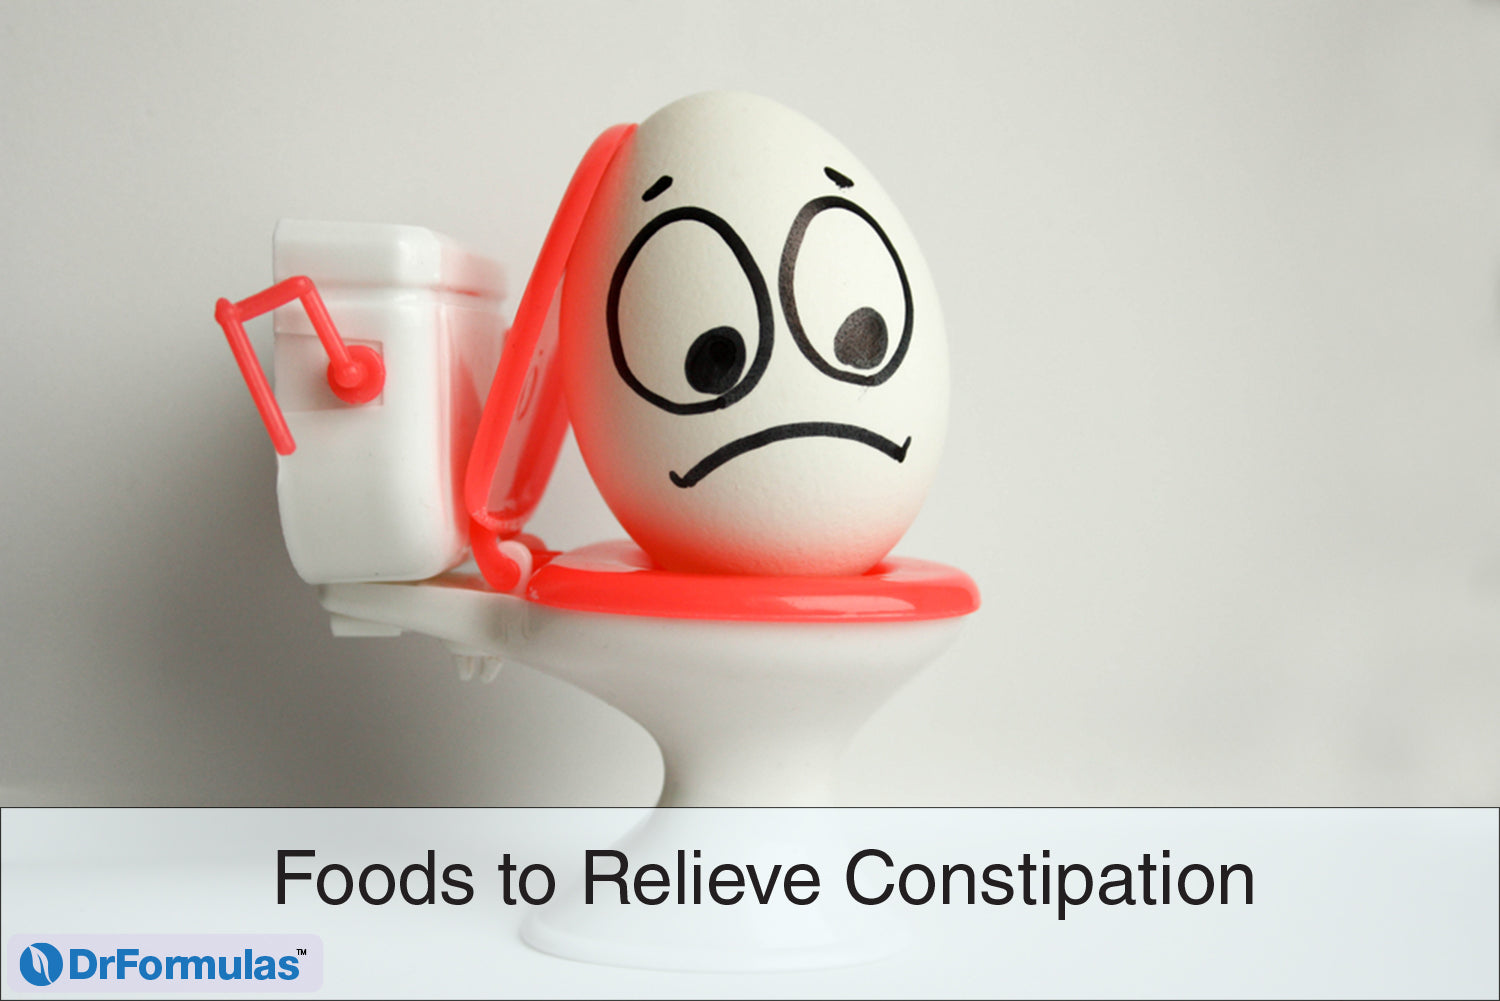 Foods to Relieve Constipation